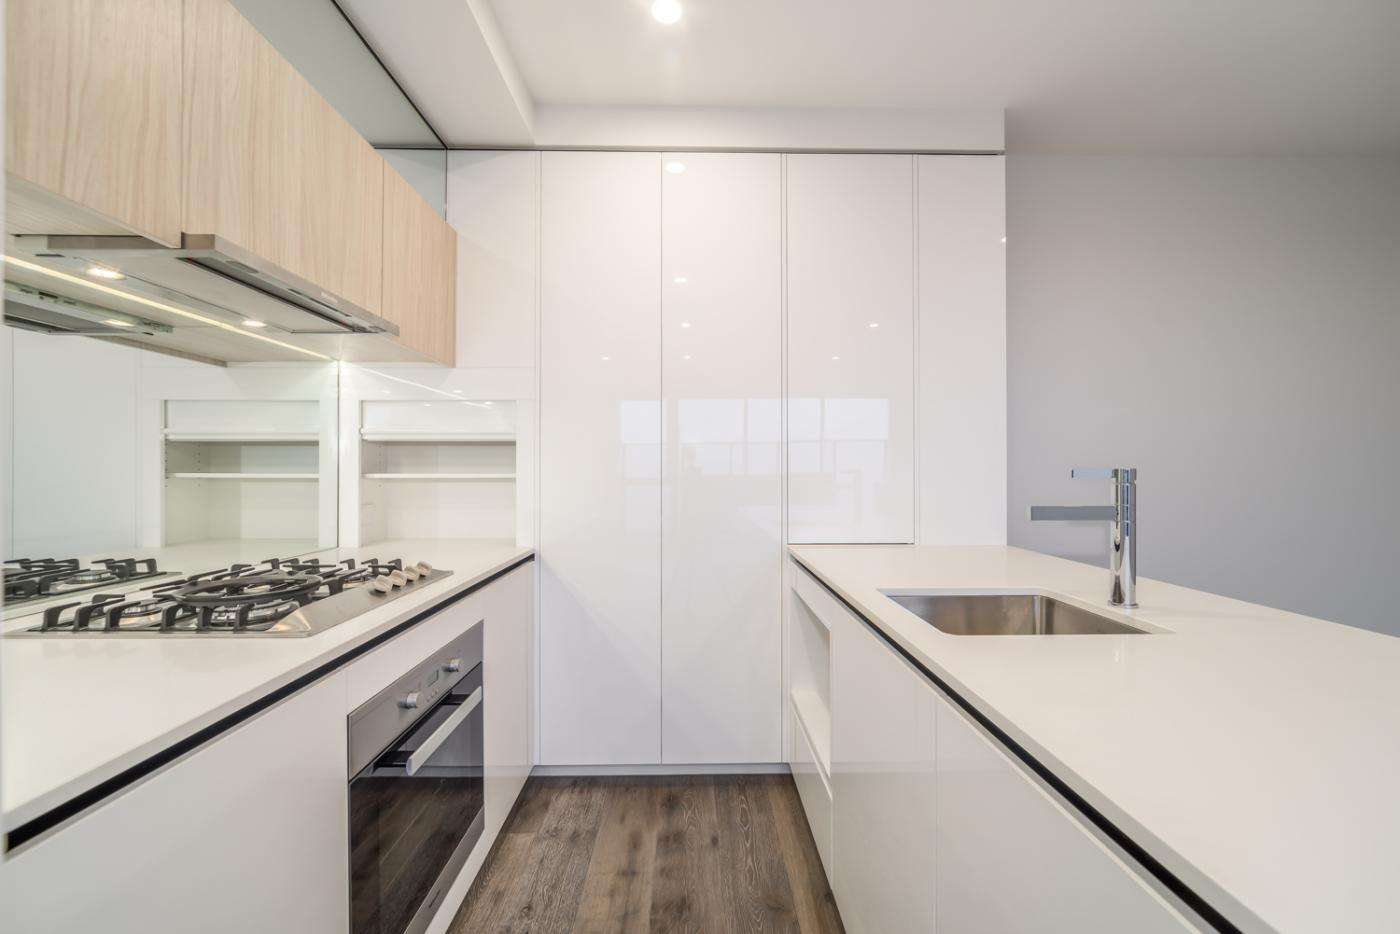 Main view of Homely apartment listing, 202/9 Camira Street, Malvern East VIC 3145